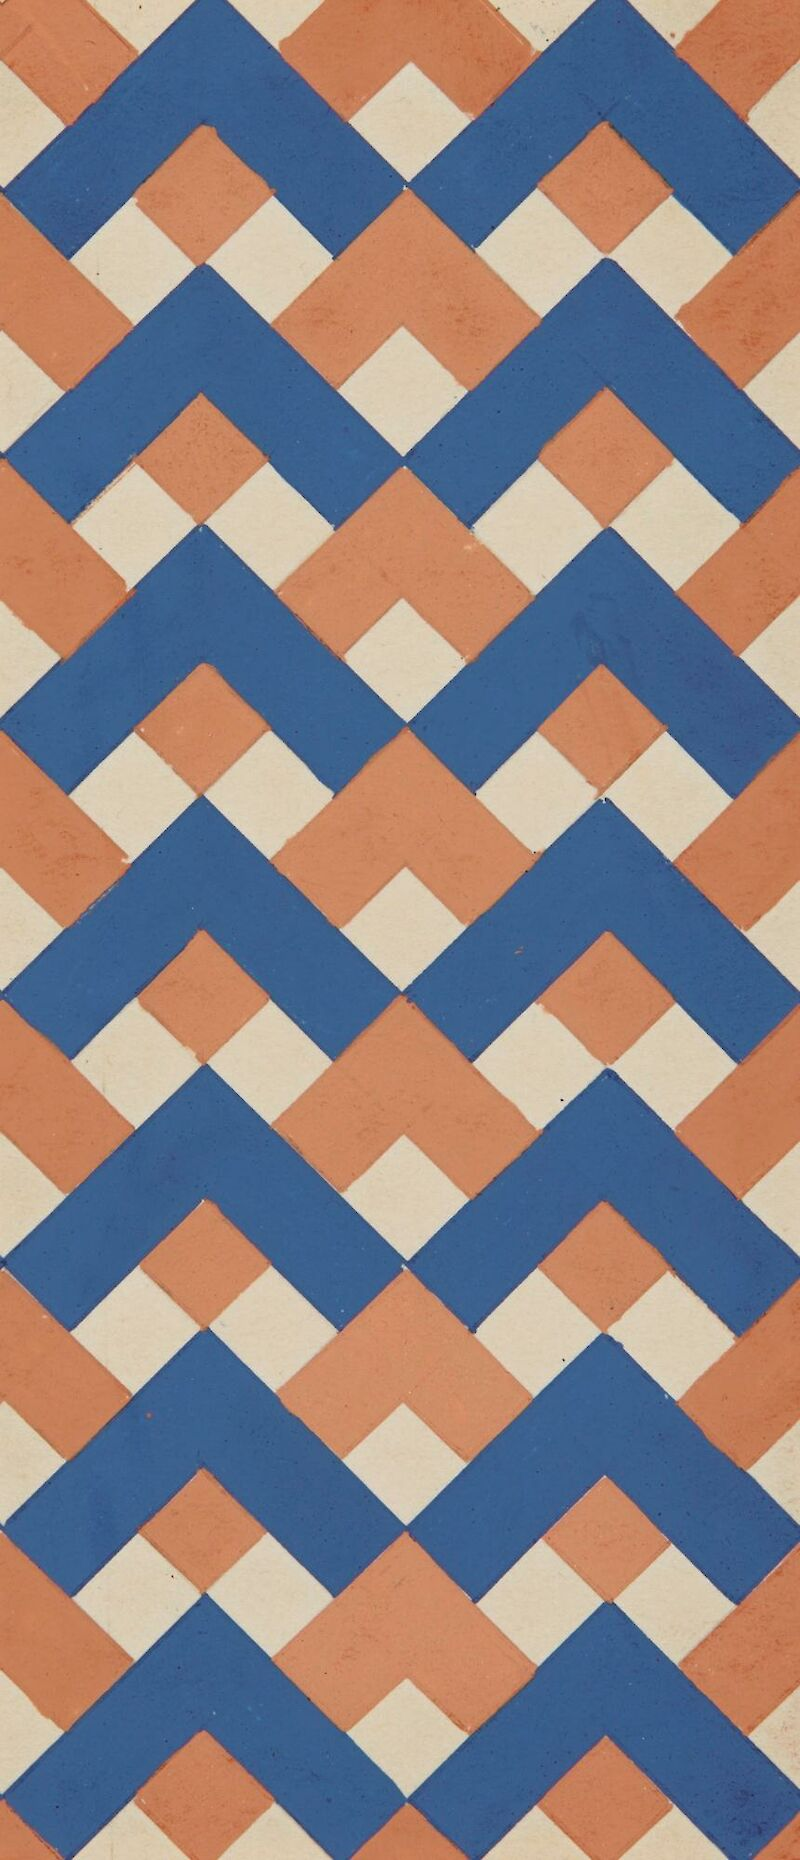 Textile Design in Blue and Orange